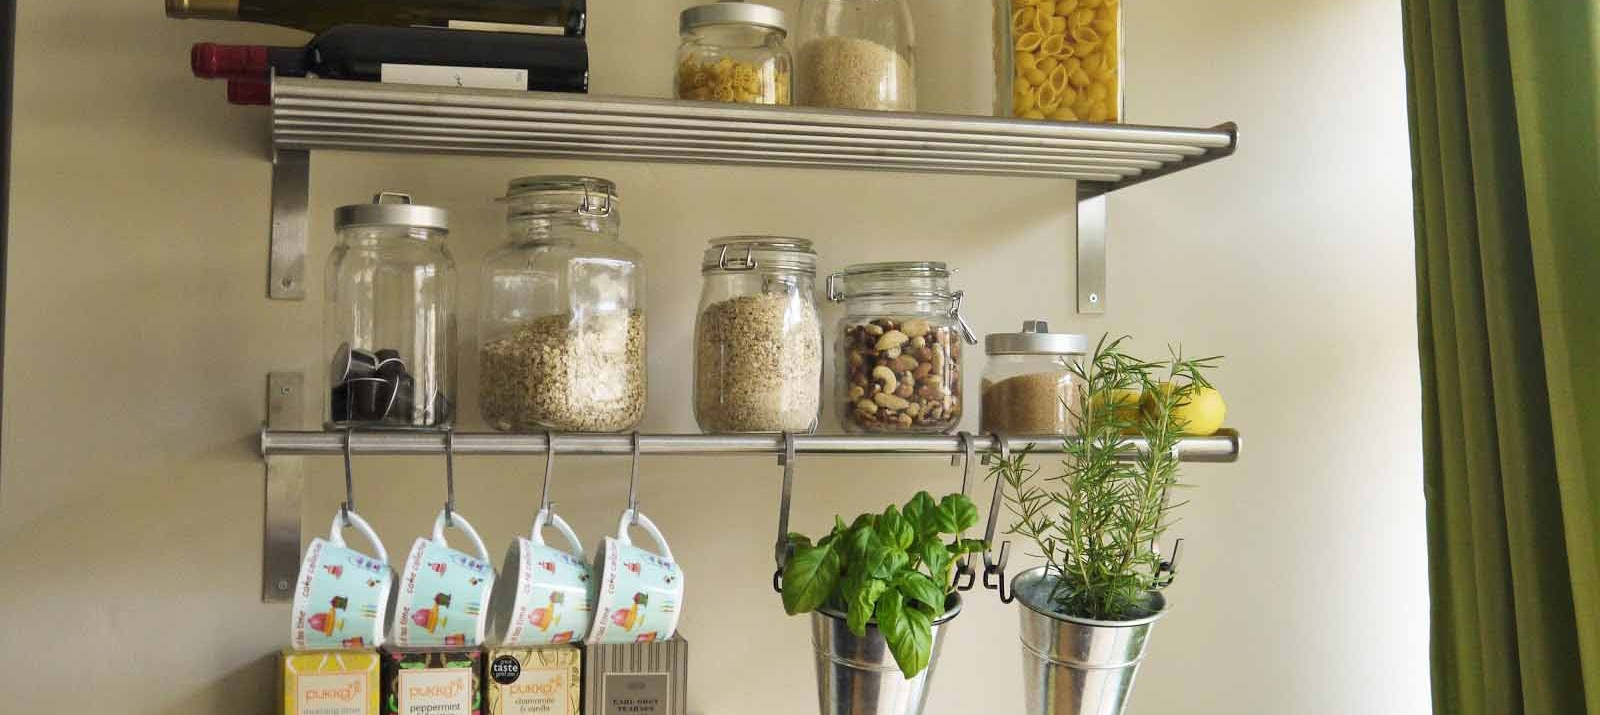 For Small Kitchen Storage